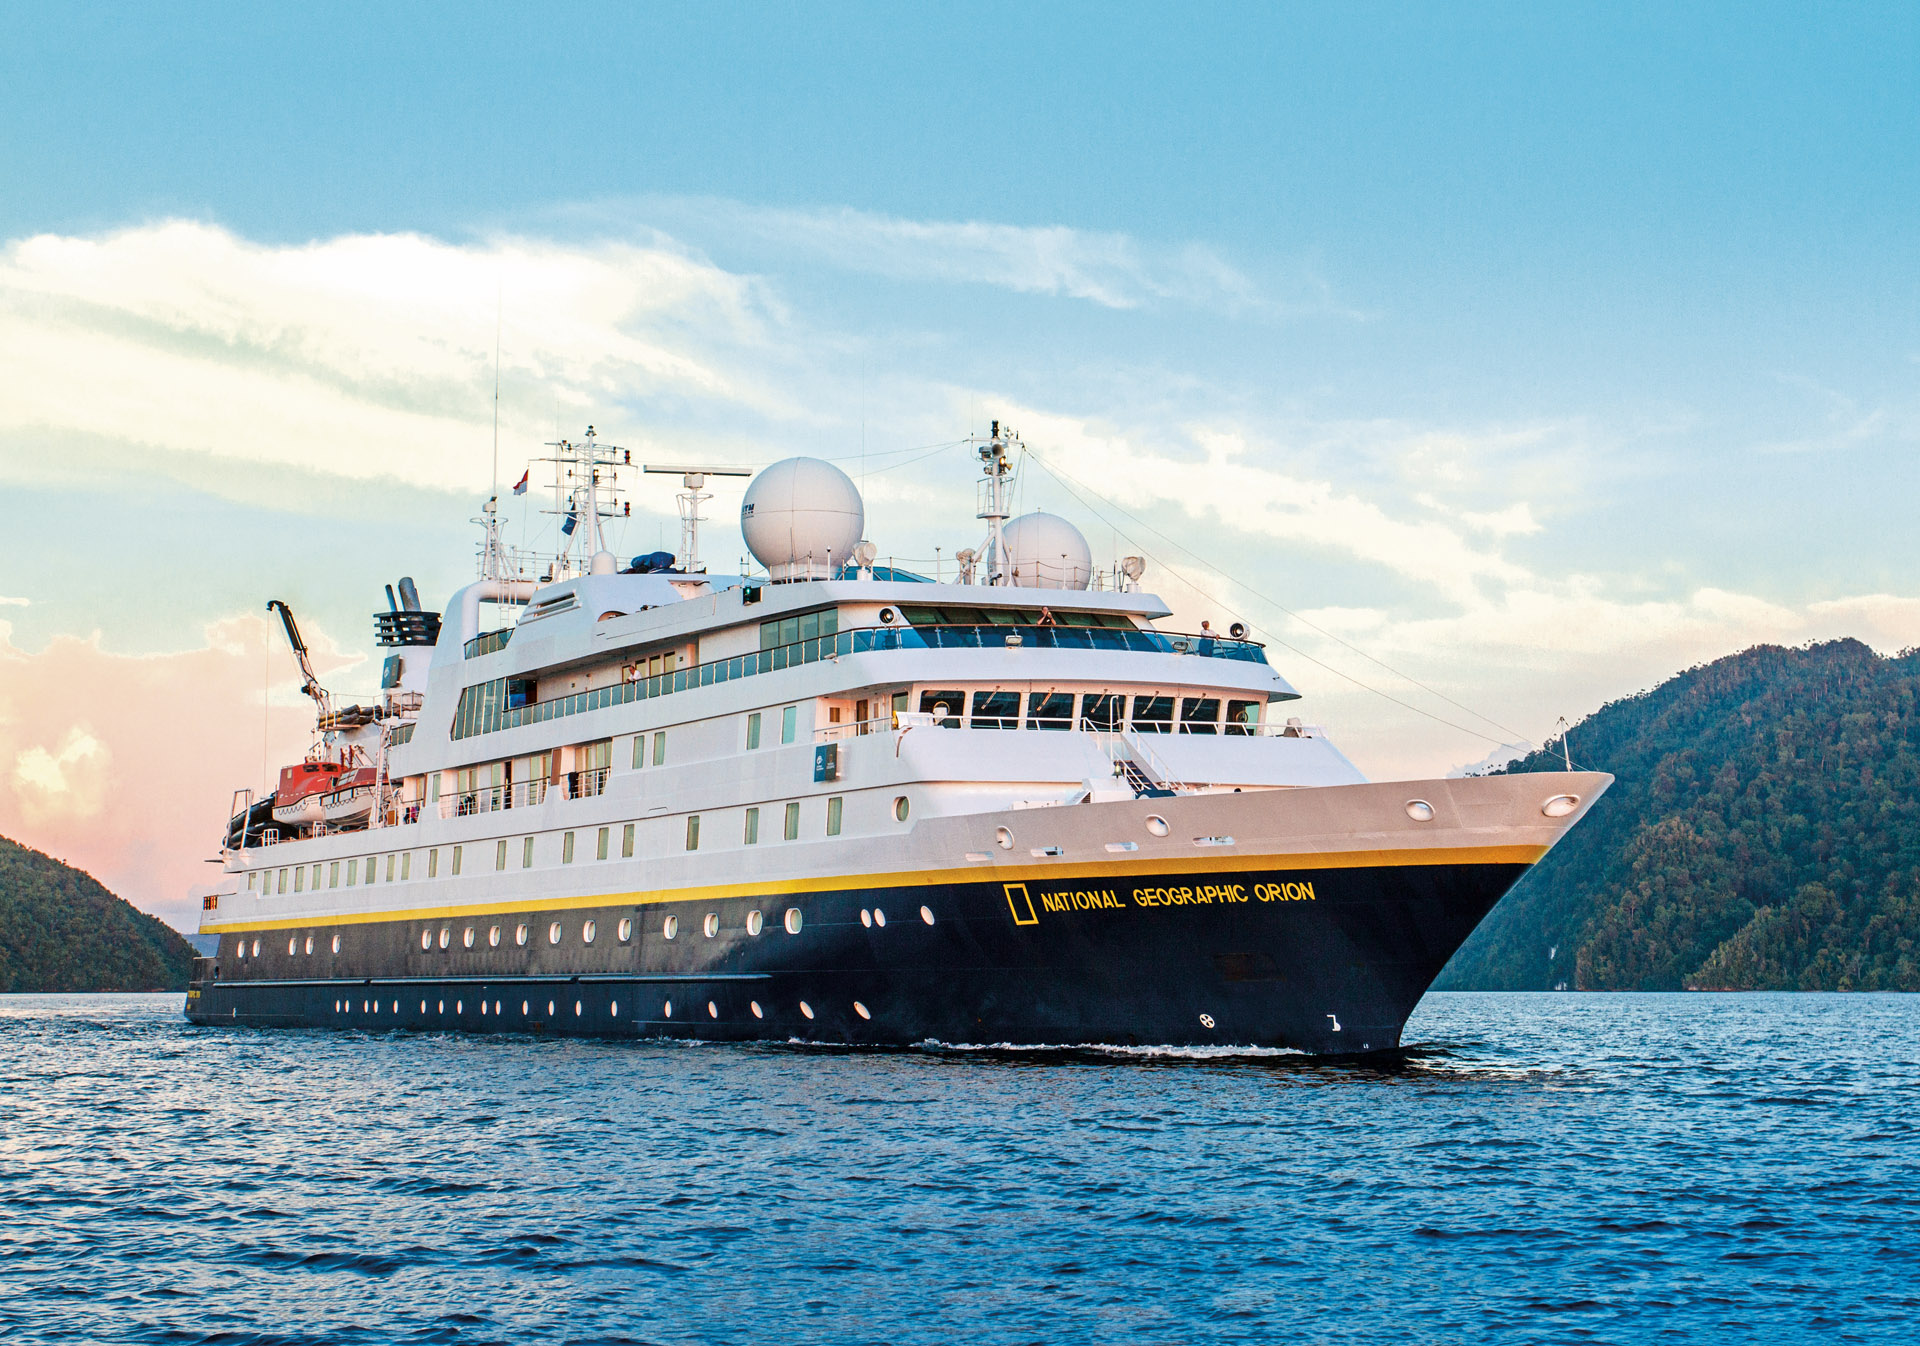 Luxury small cruise ships provide greater accessibility for Small cruise ship lines